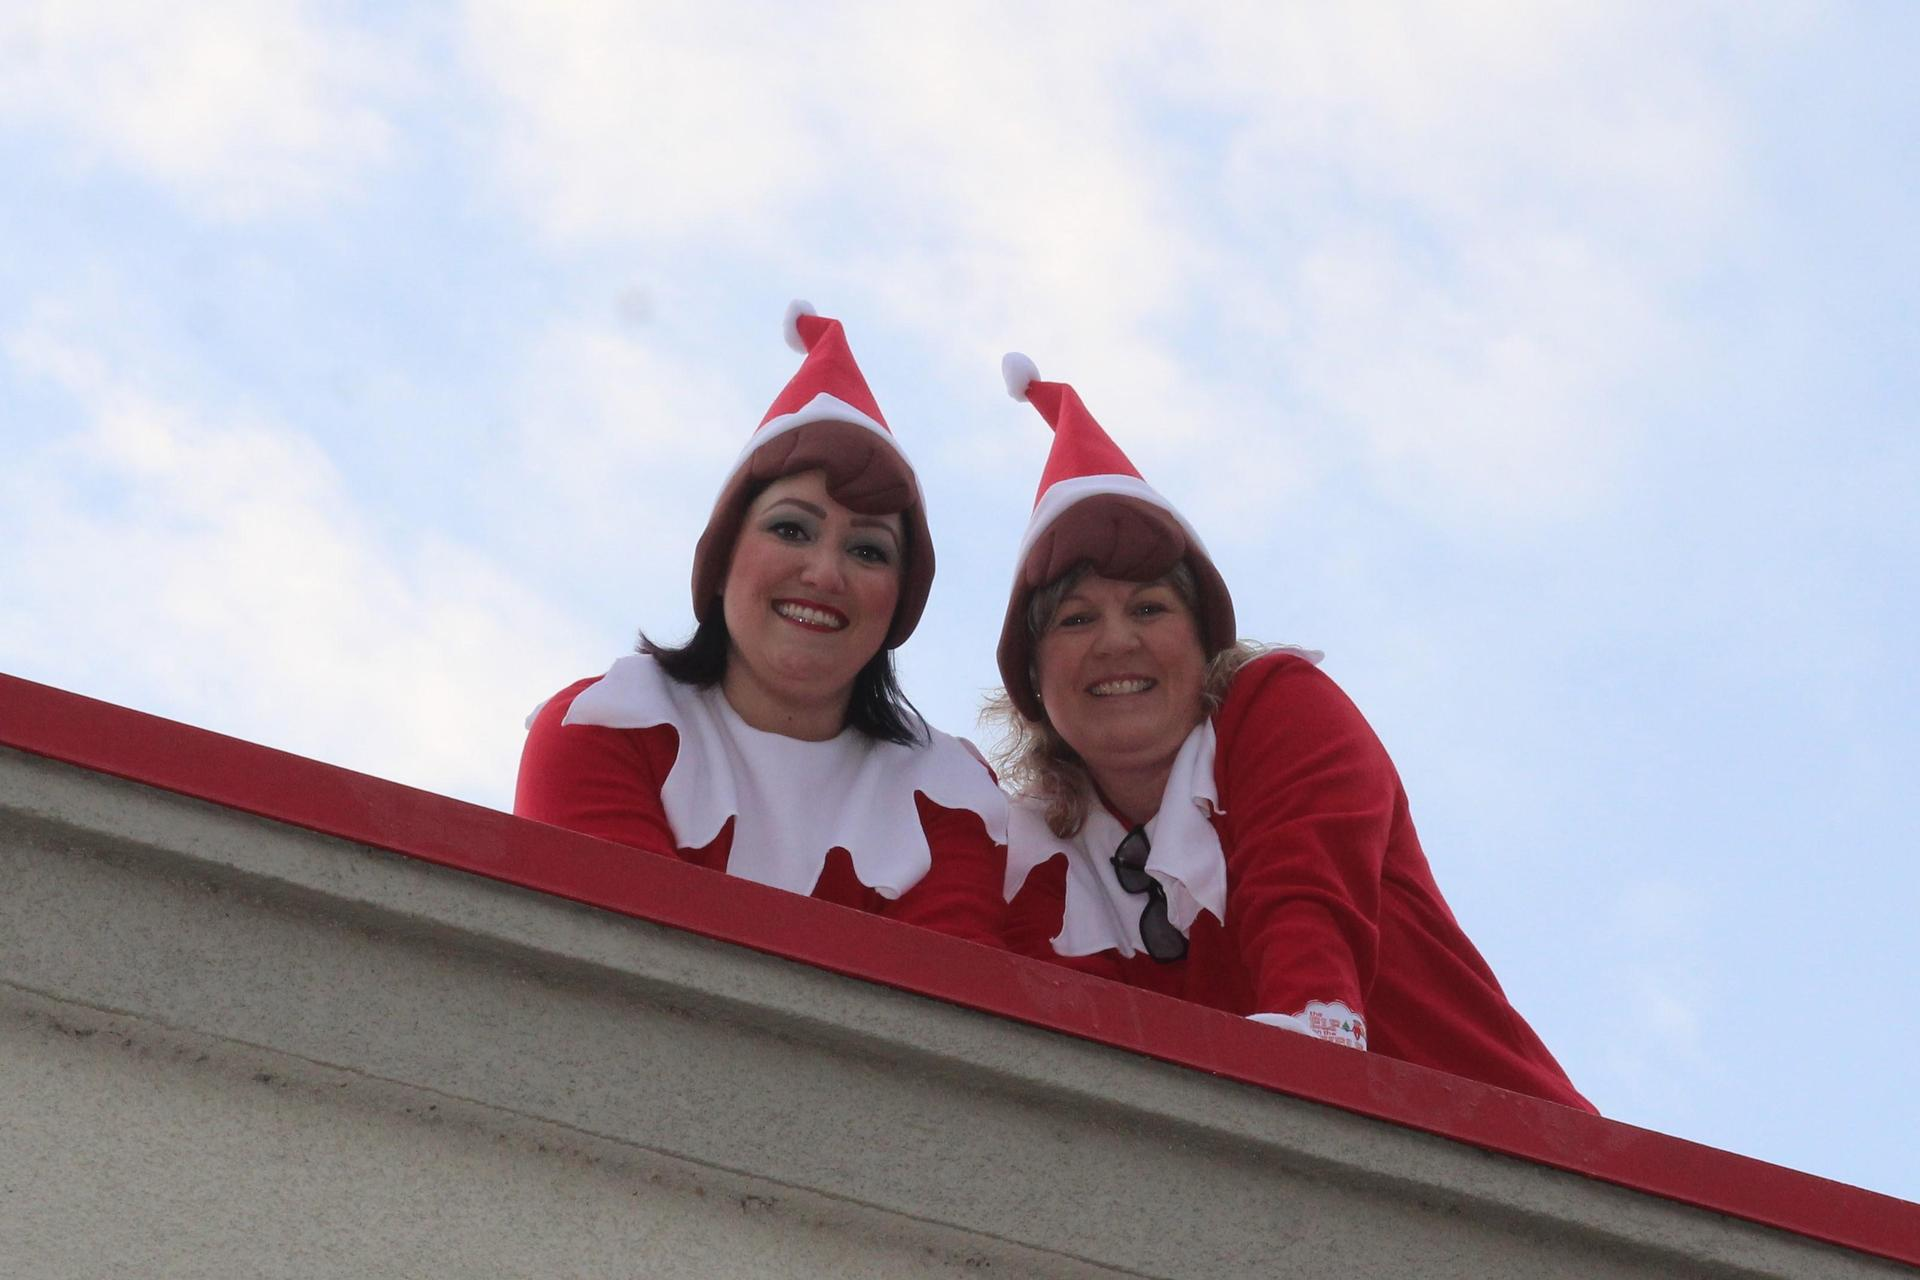 Two Elf on the Shelf sightings on the Science Building roof